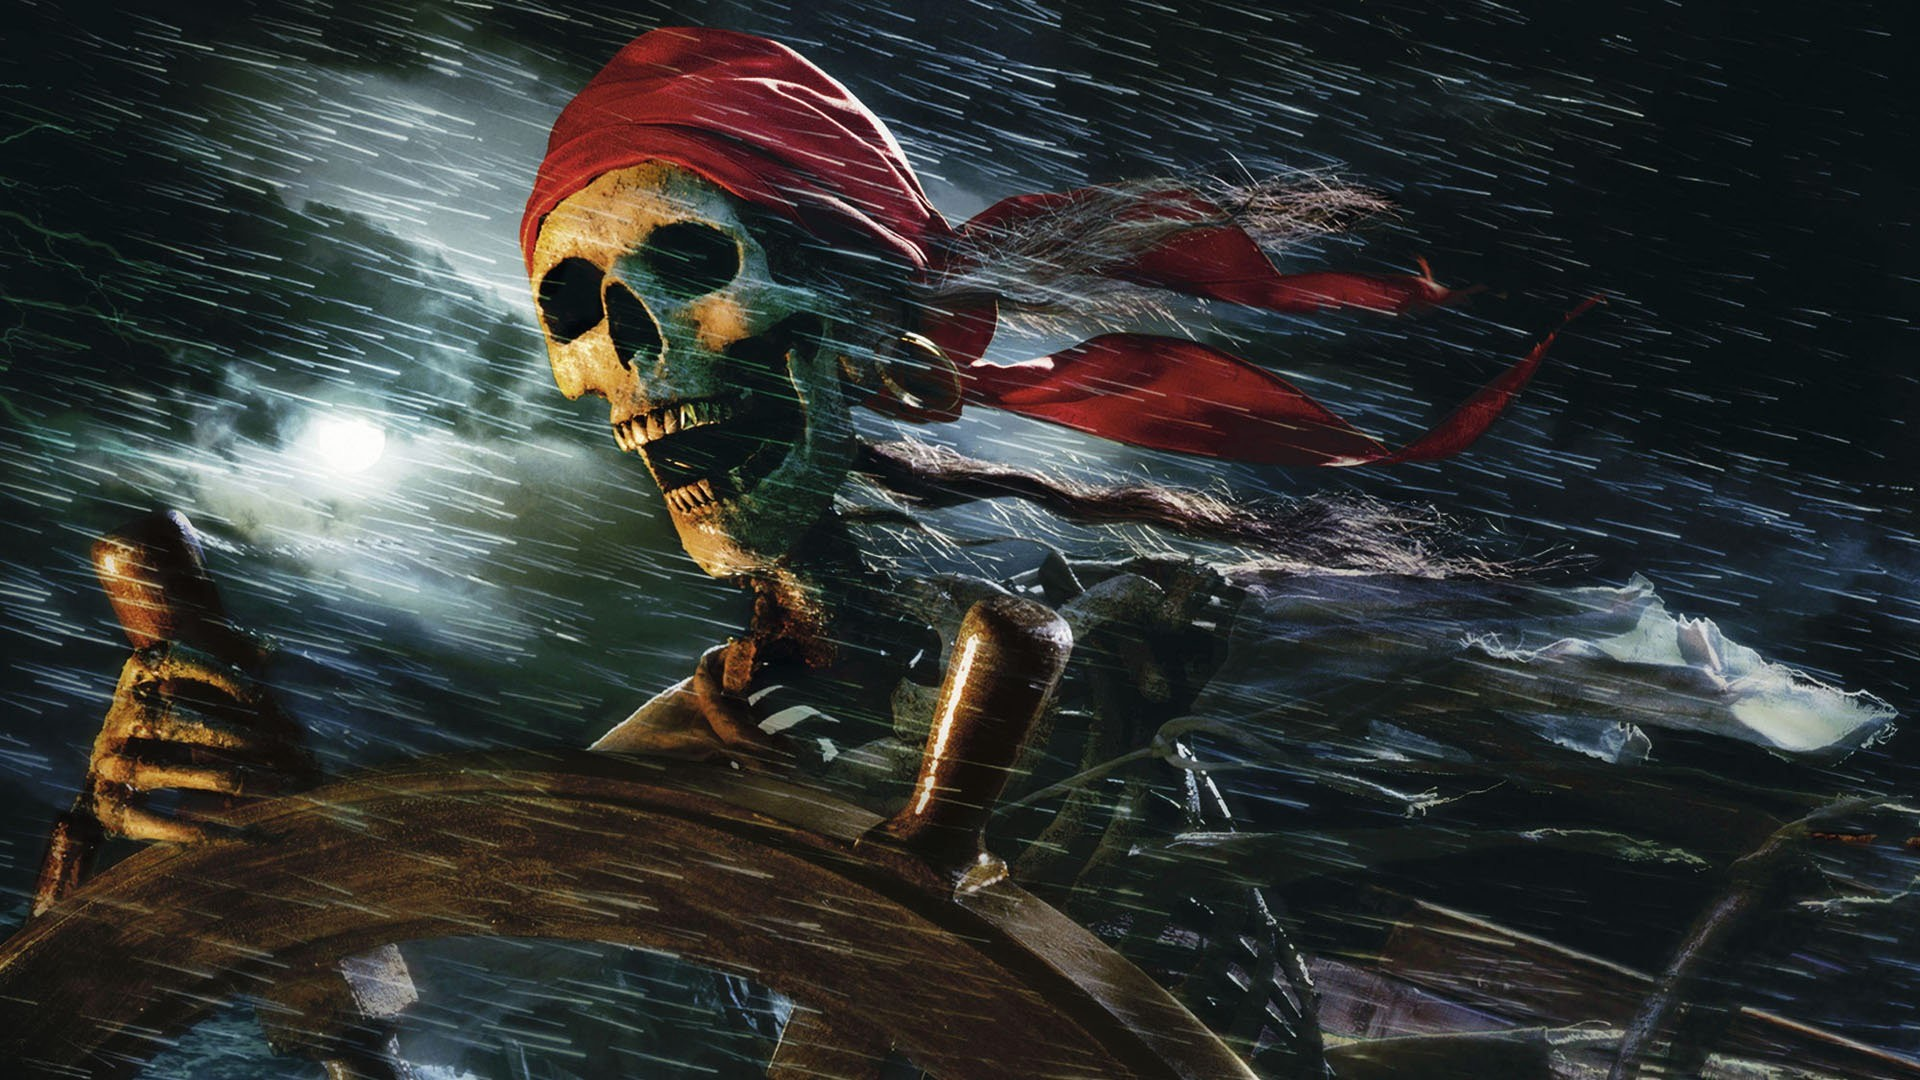 Pirates of the caribbean wallpaper 73 images - Pirates of the caribbean wallpaper ...